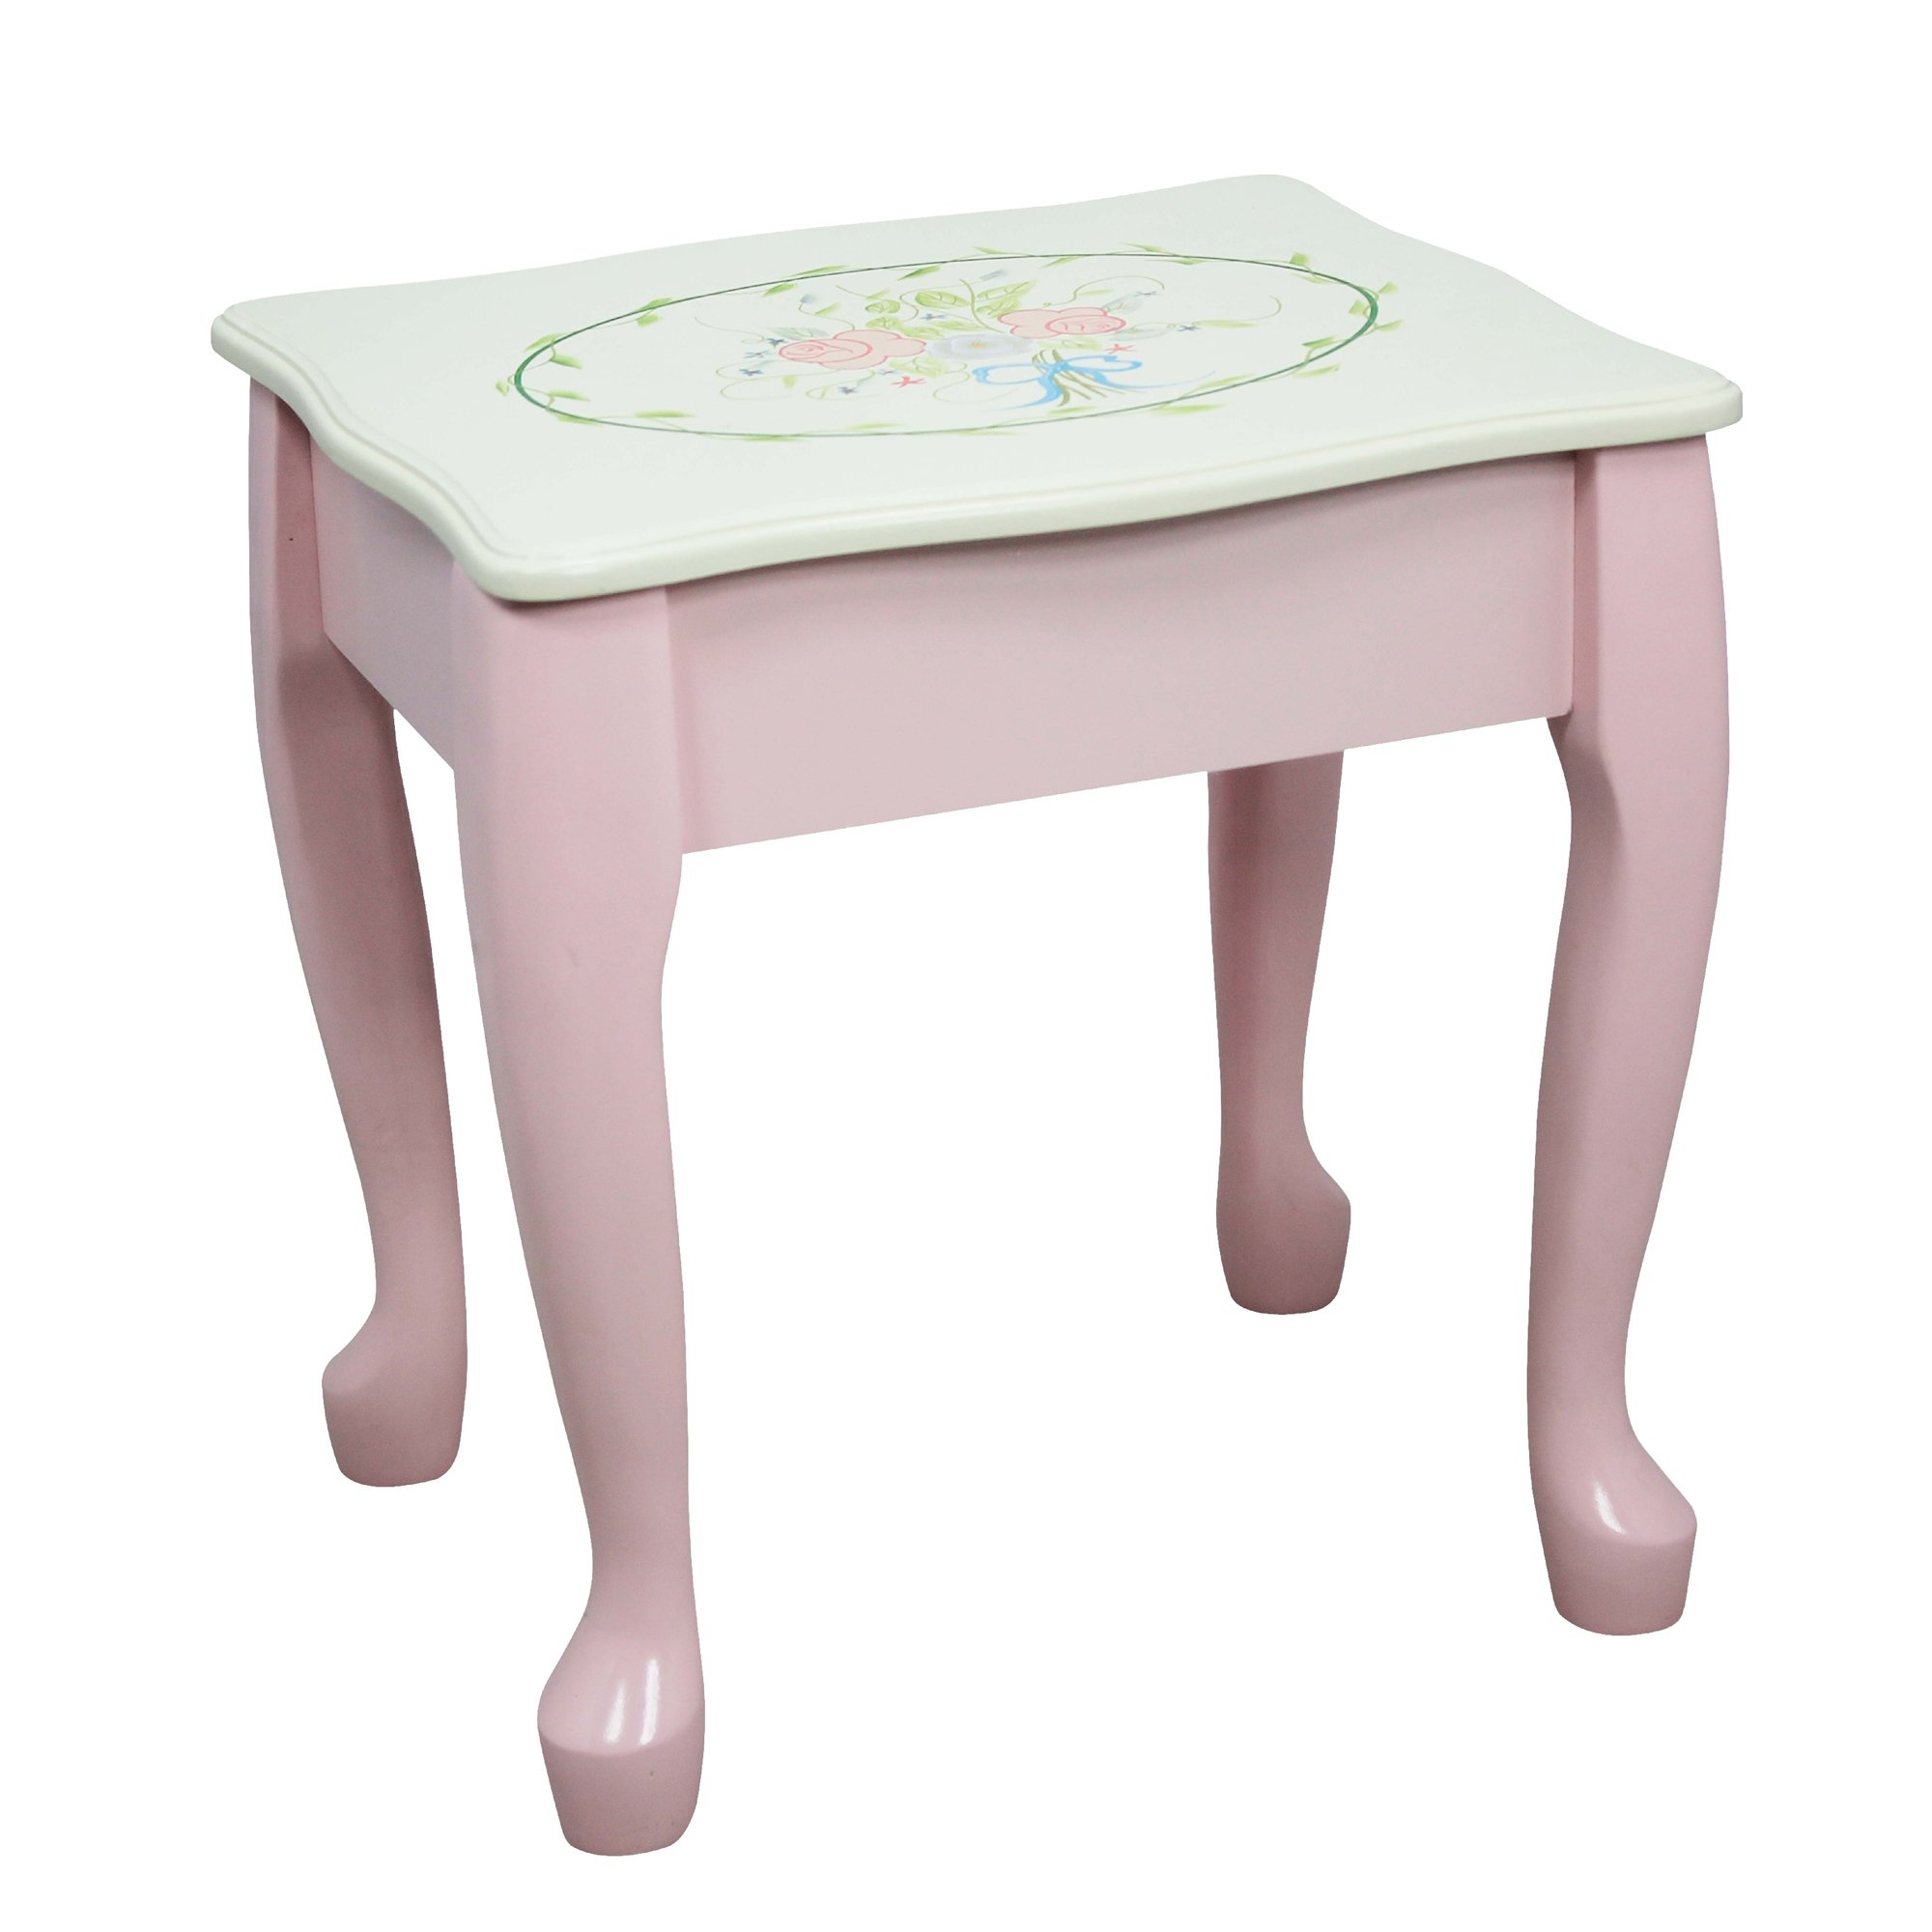 Fantasy Fields - Bouquet Thematic Kids Classic Vanity Table and Stool Set with Mirror   Imagination Inspiring Hand Crafted & Hand Painted Details   Non-Toxic, Lead Free Water-based Paint by Teamson Design Corp (Image #7)